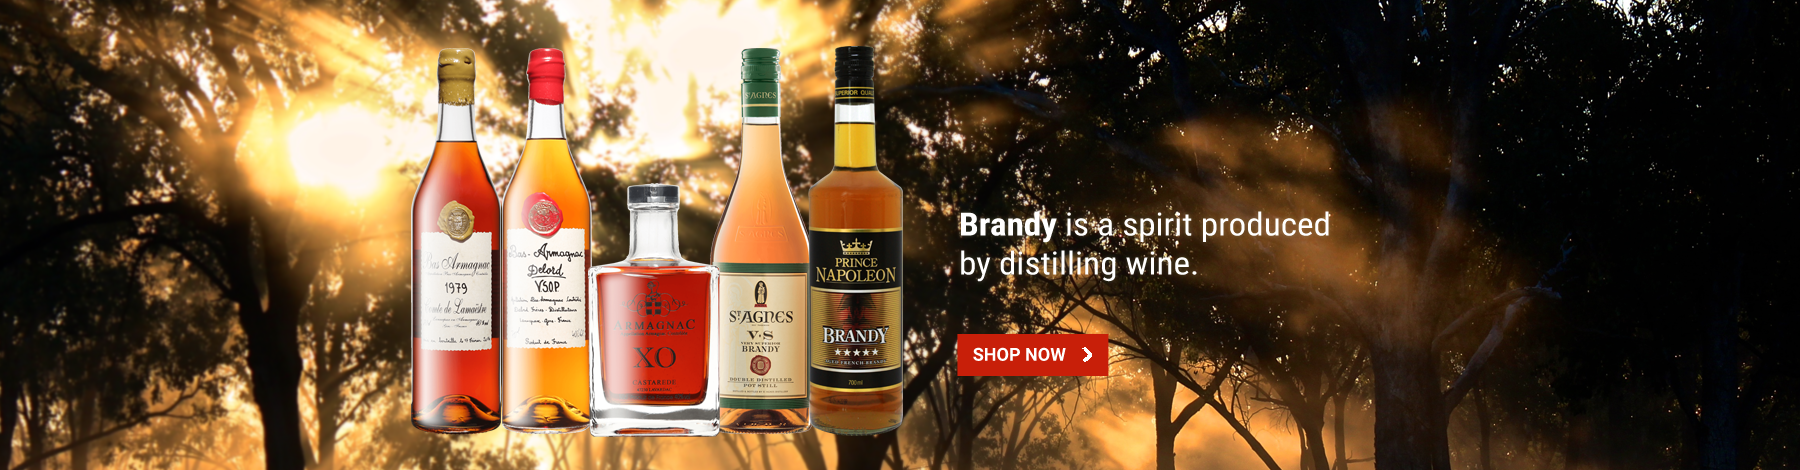 Brandy in Just Liquor Cellars